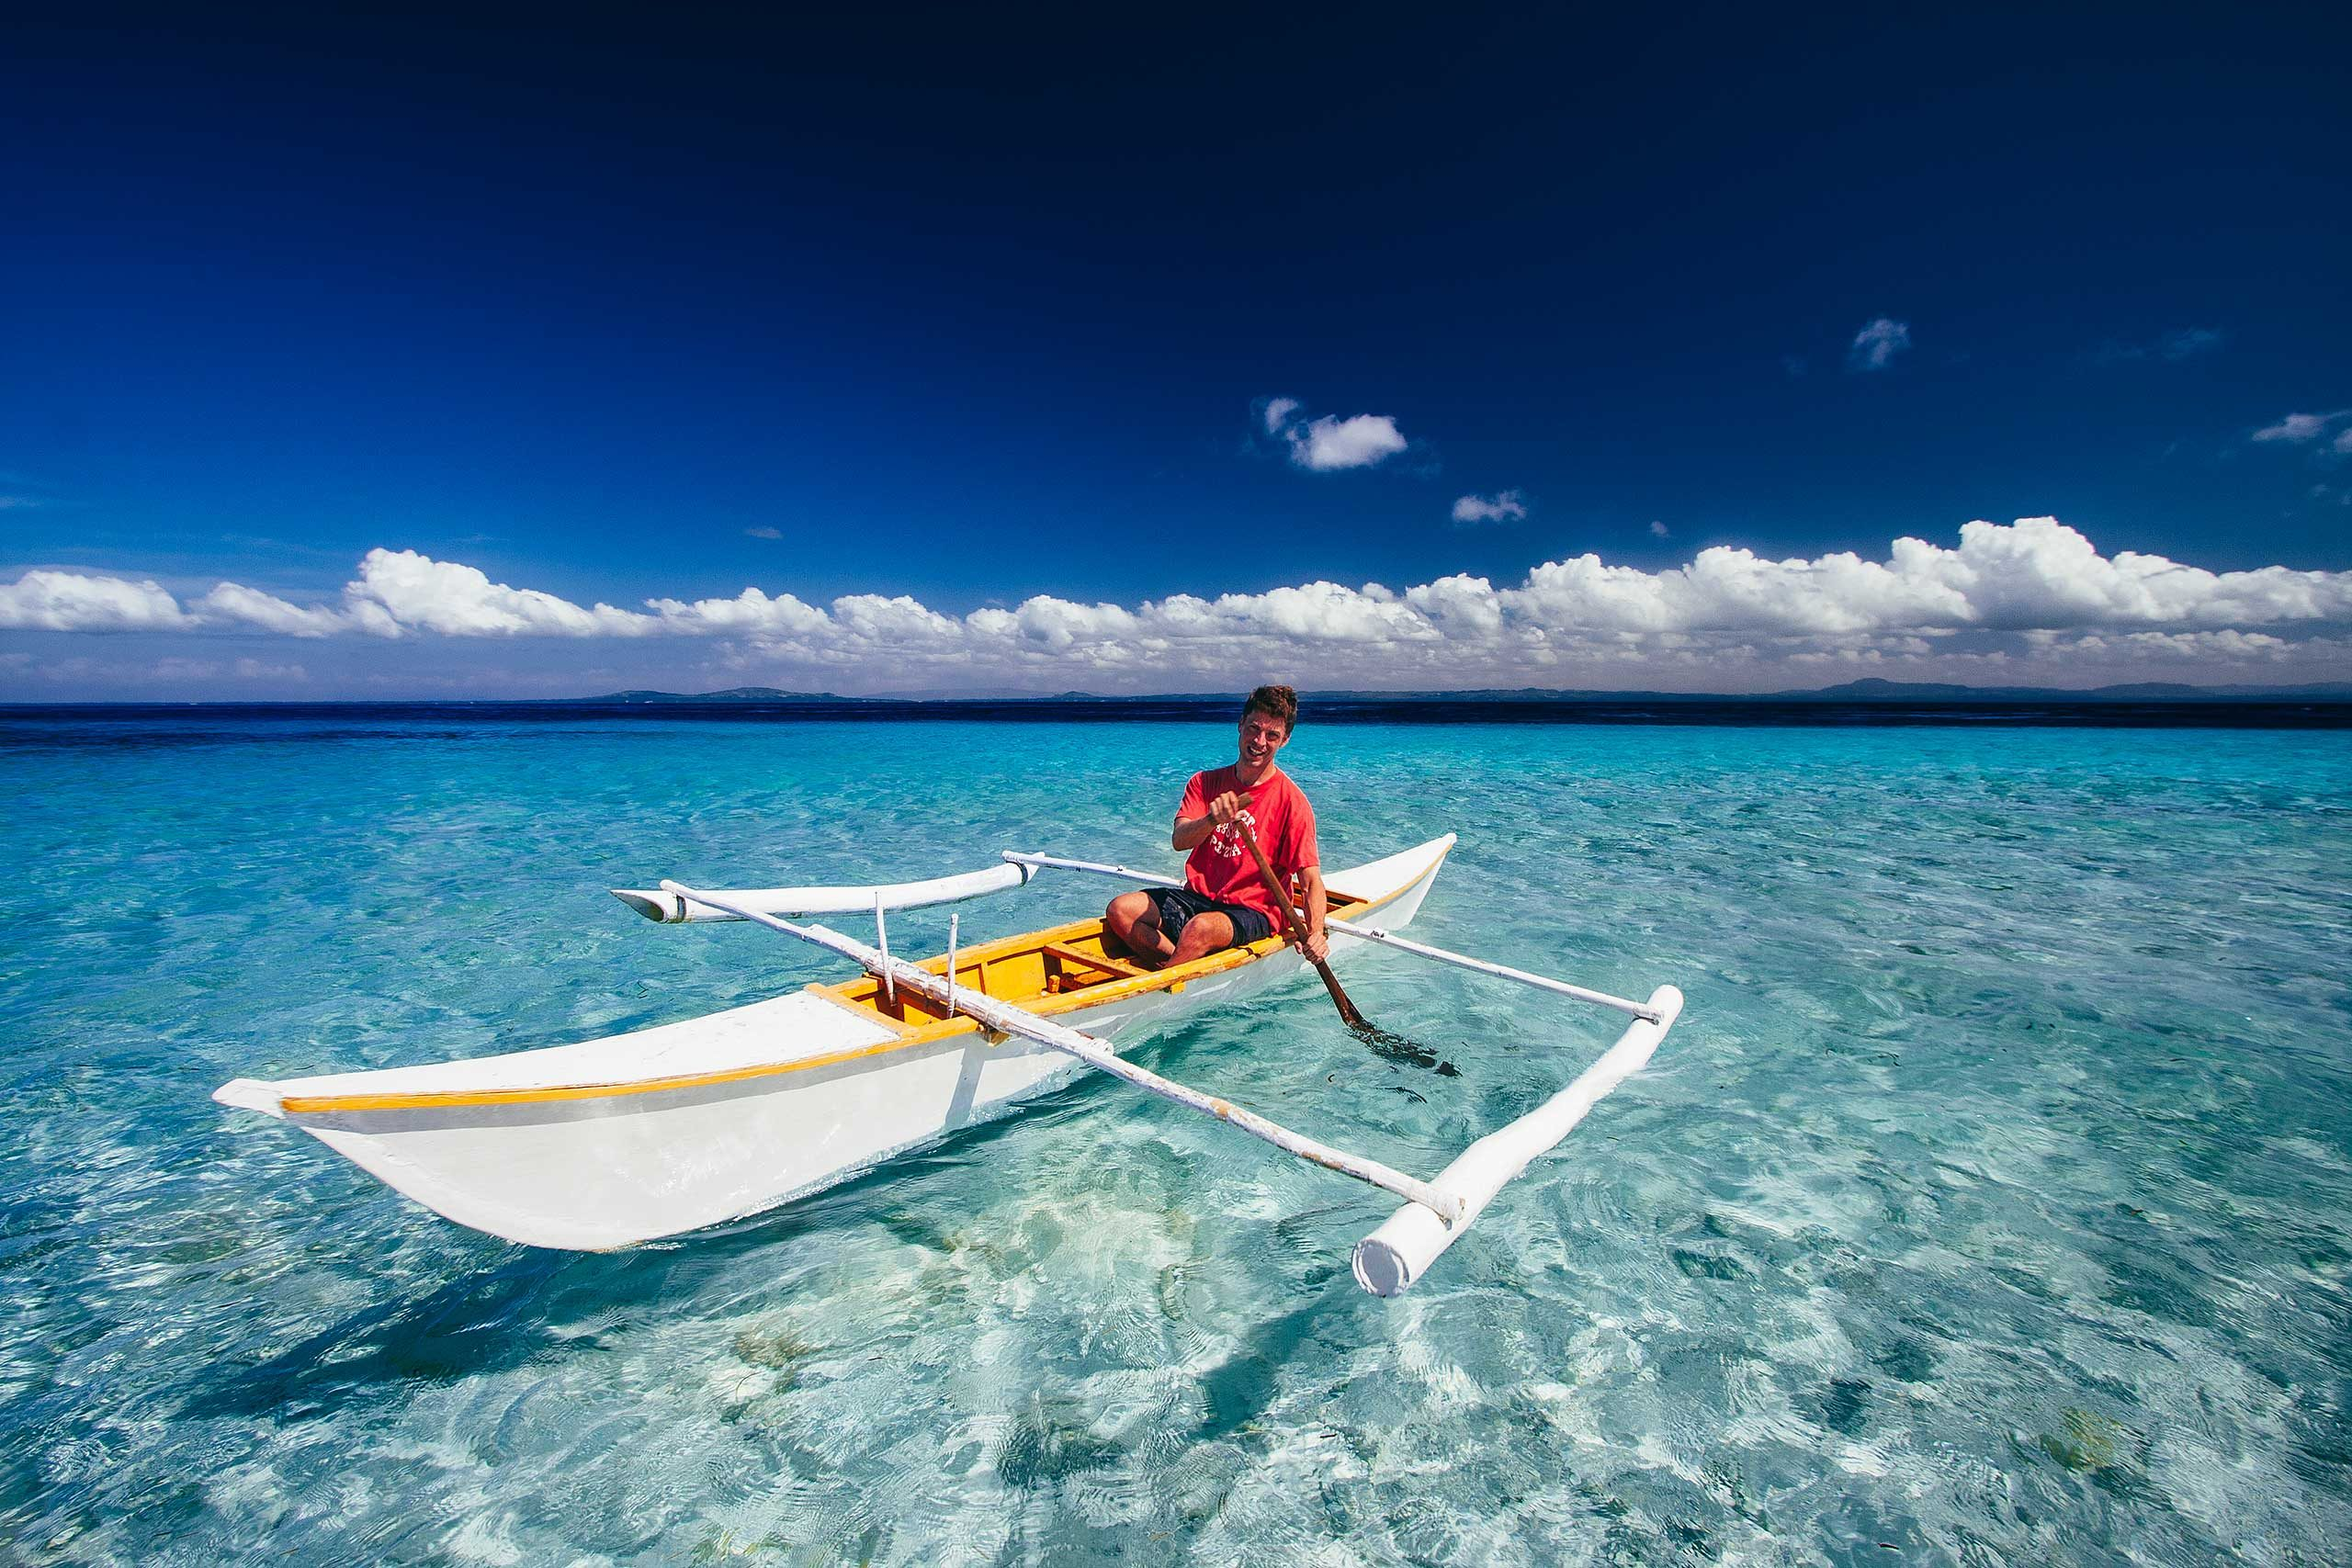 Paddling an outrigger 'bangka' sea kayak on Pamilacan Island | Photo by Mang Fe